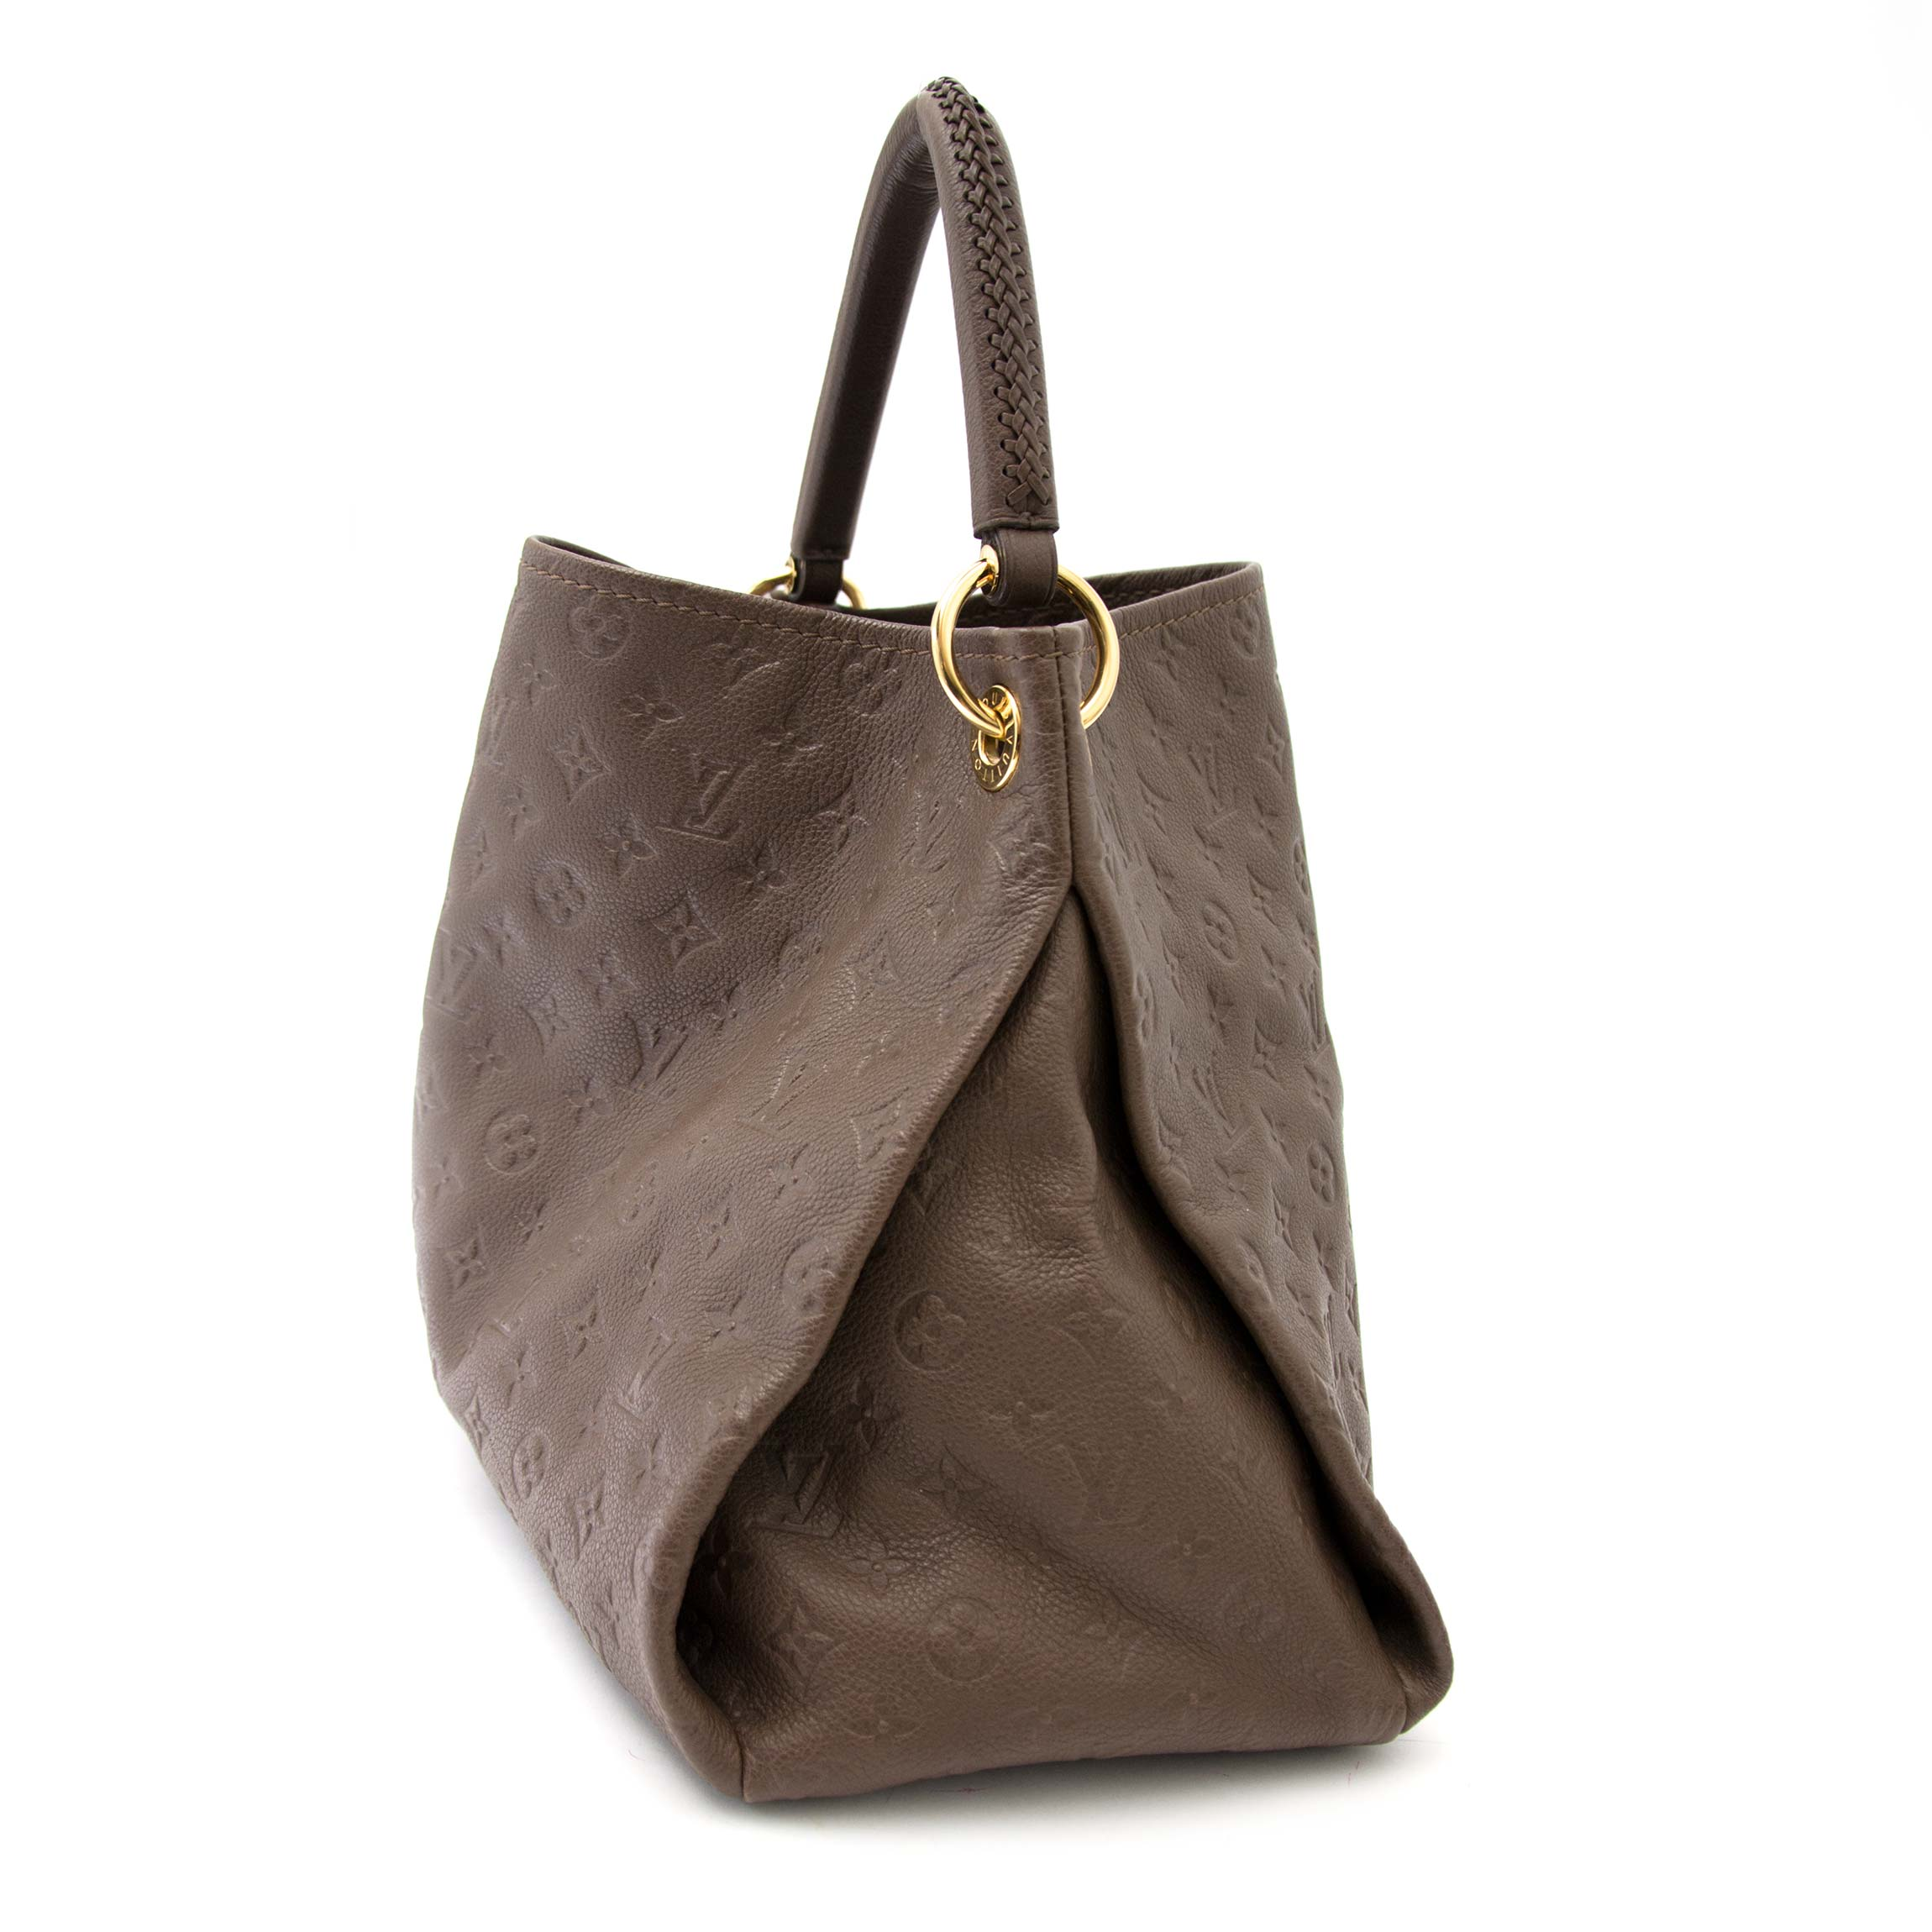 ... www.labellov.com Koop nu deze Louis Vuitton Artsy MM Monogram Empreinte  bag online or in store 83753f698f400